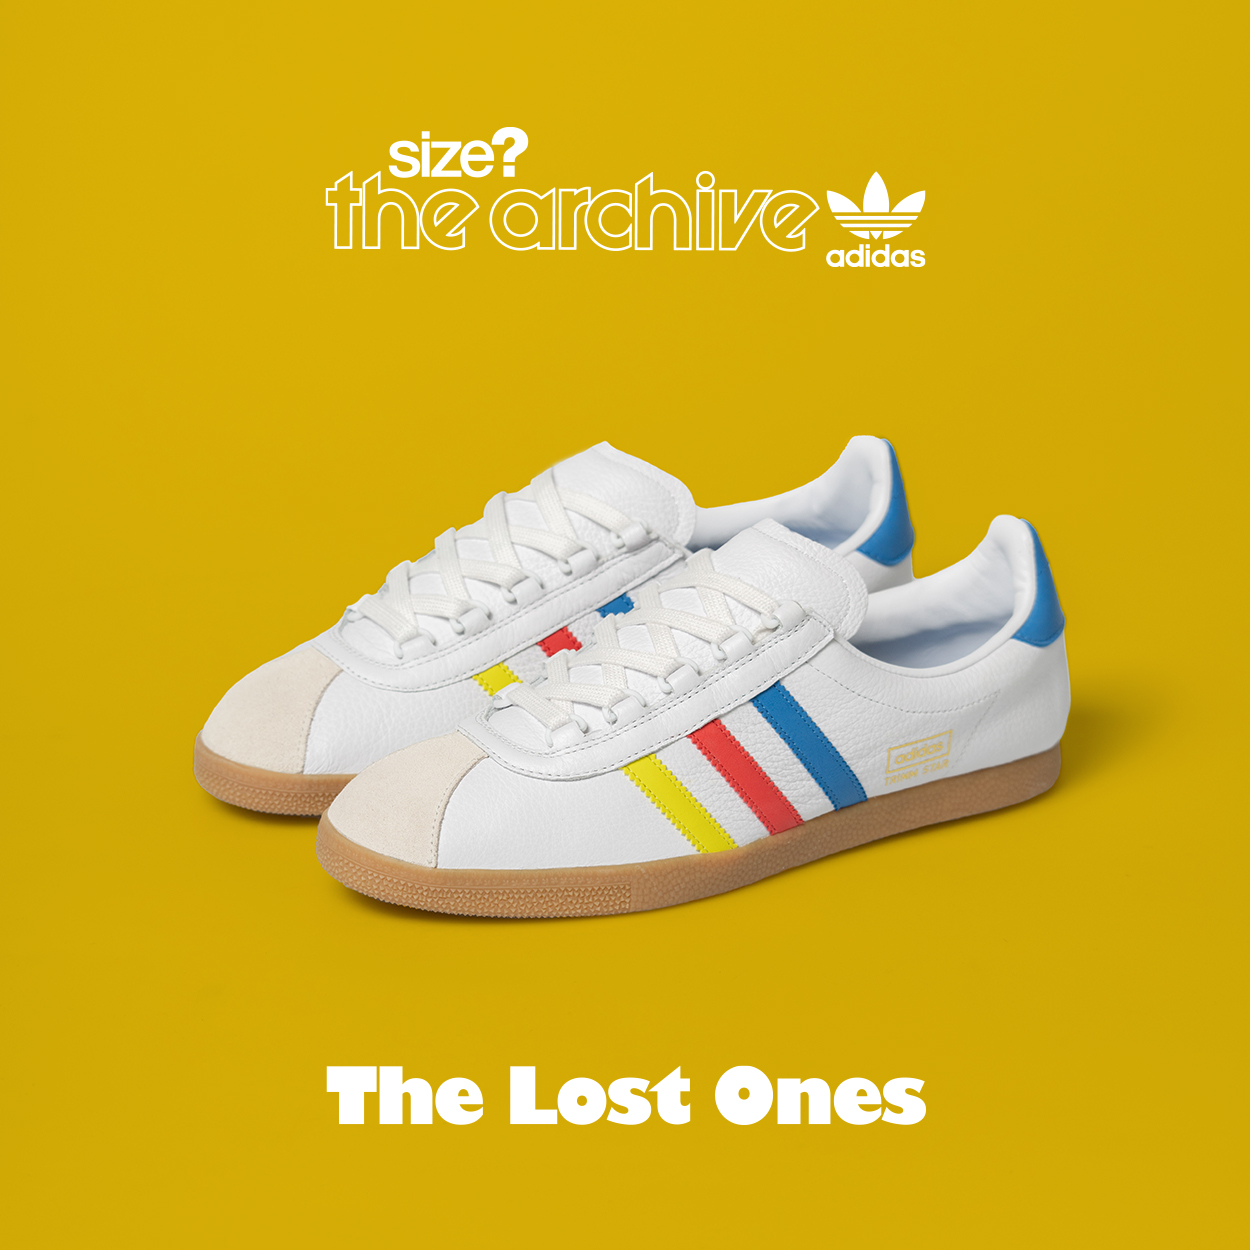 Our adidas Originals 'The Lost Ones' series kicks off with the Trimm Star 'Archer'